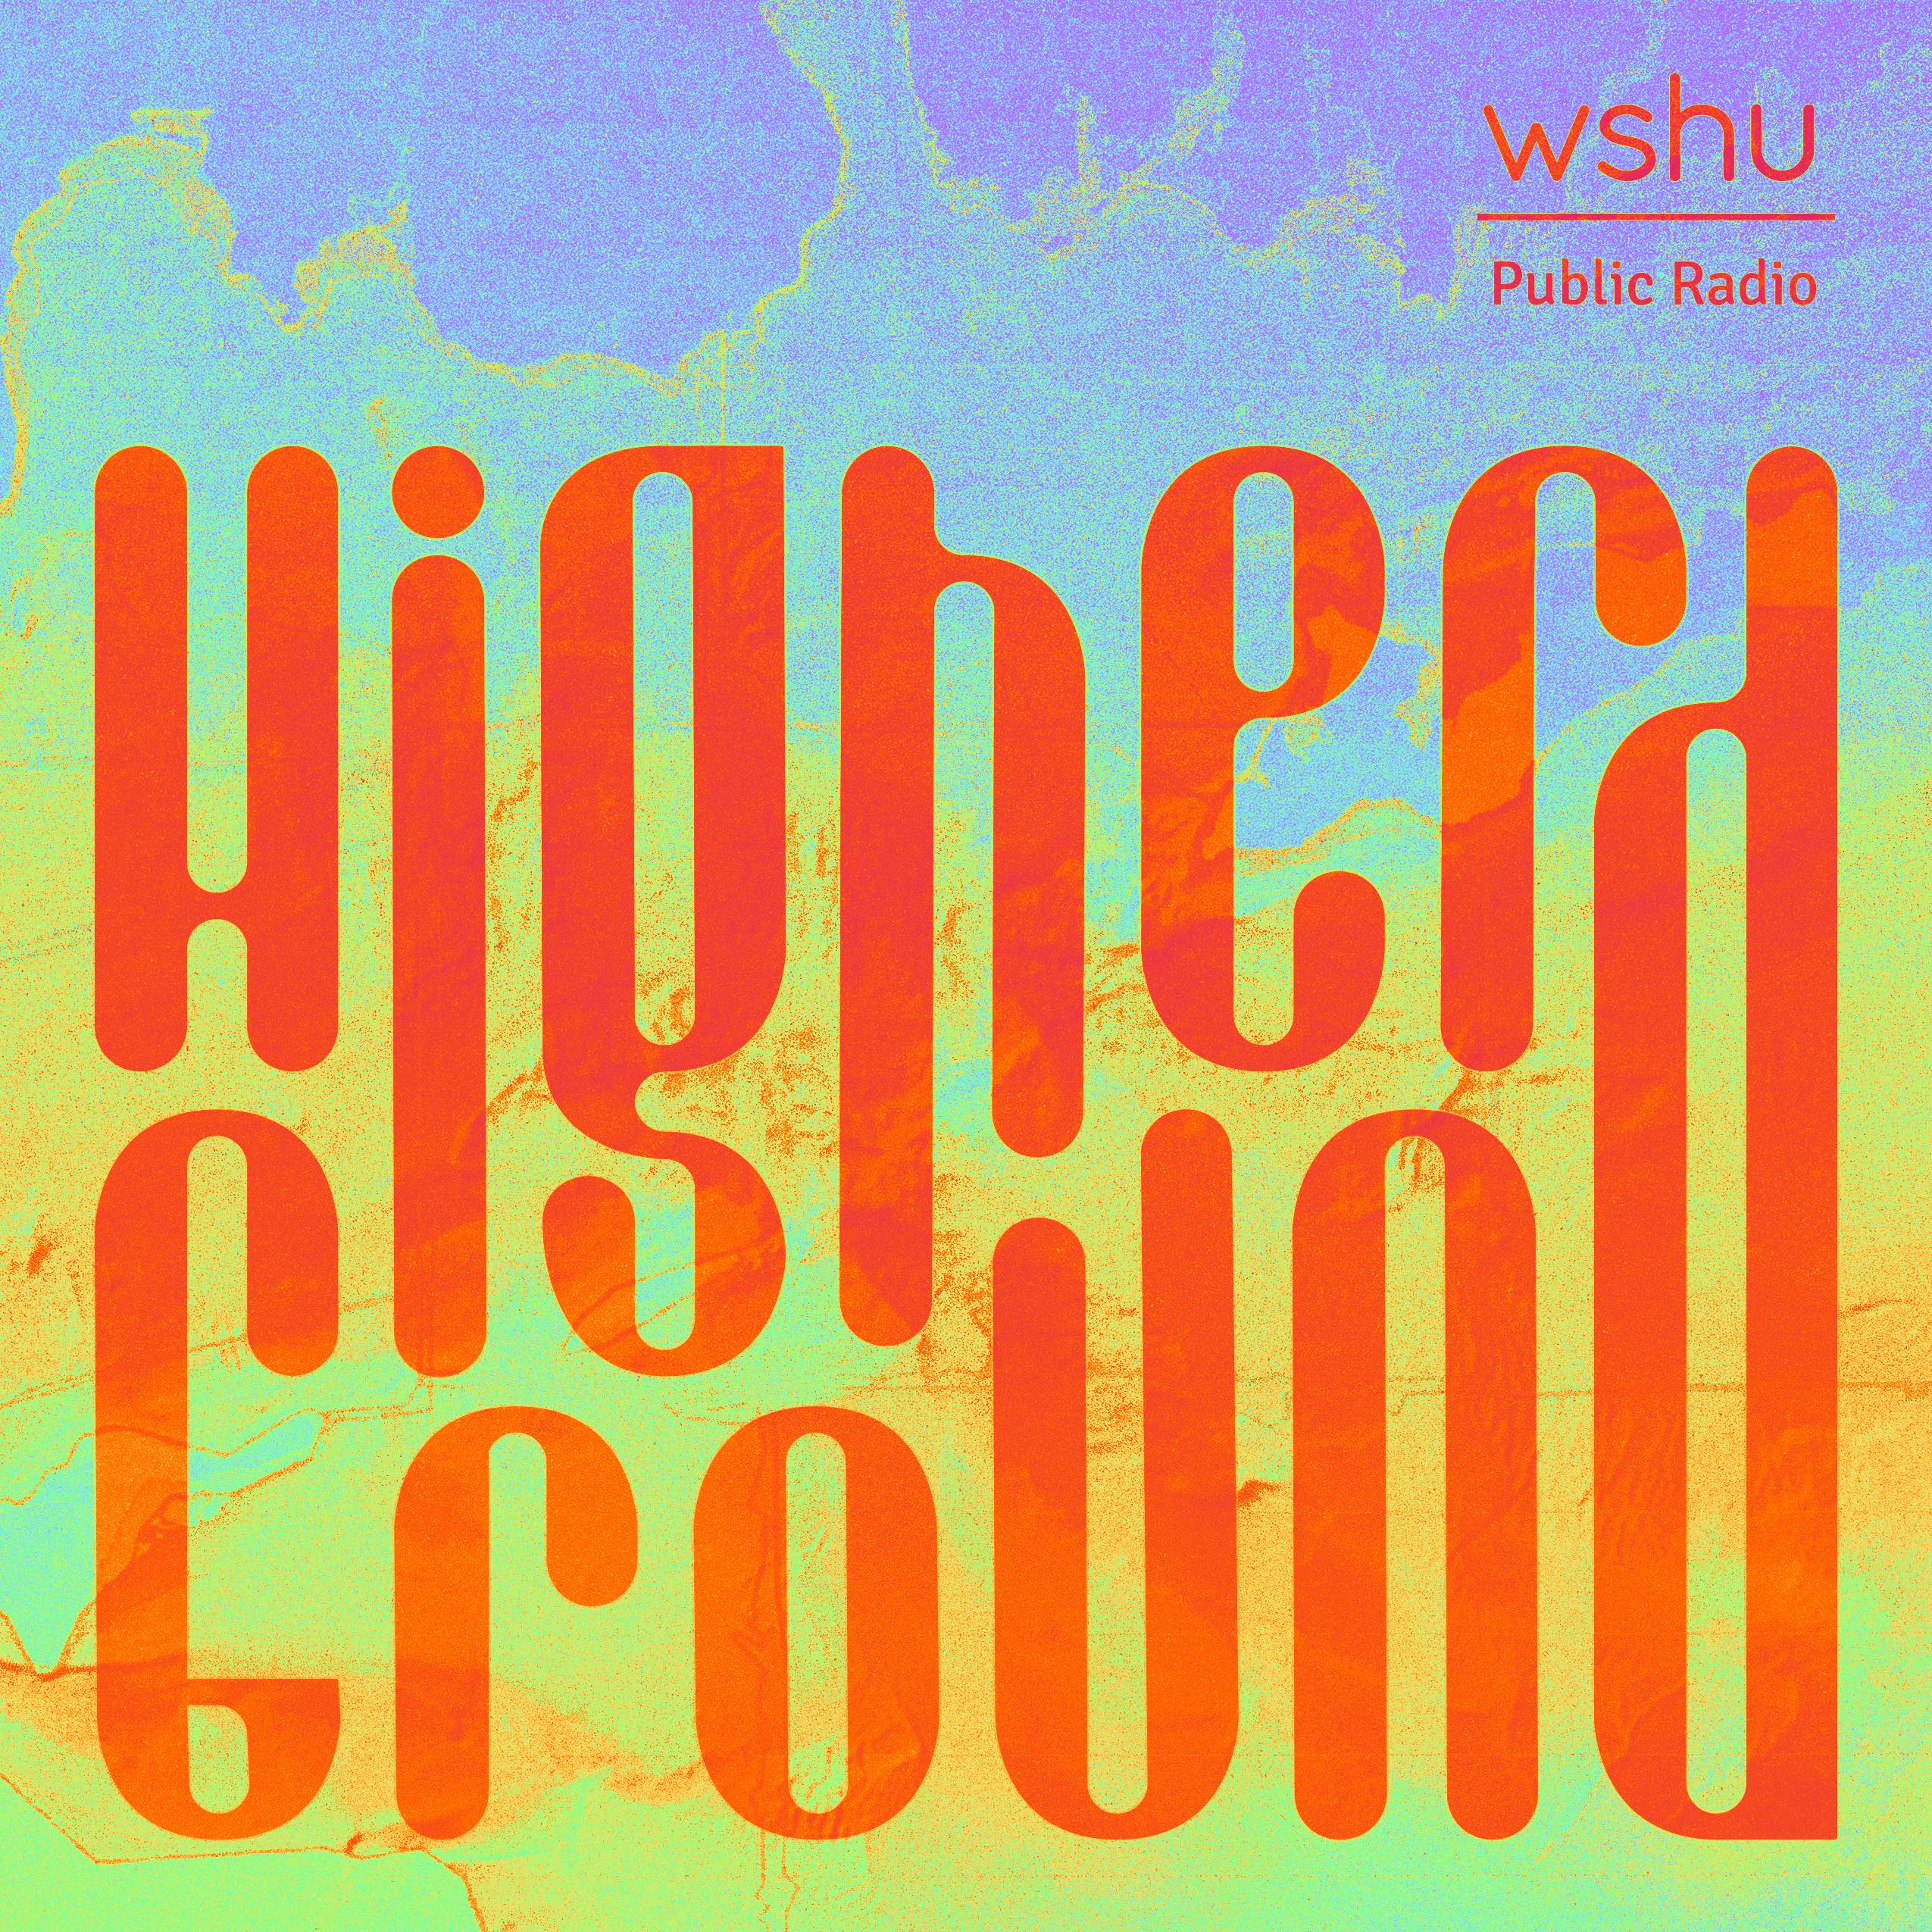 Stony Brook students, researchers contribute to WSHU's Higher Ground podcast